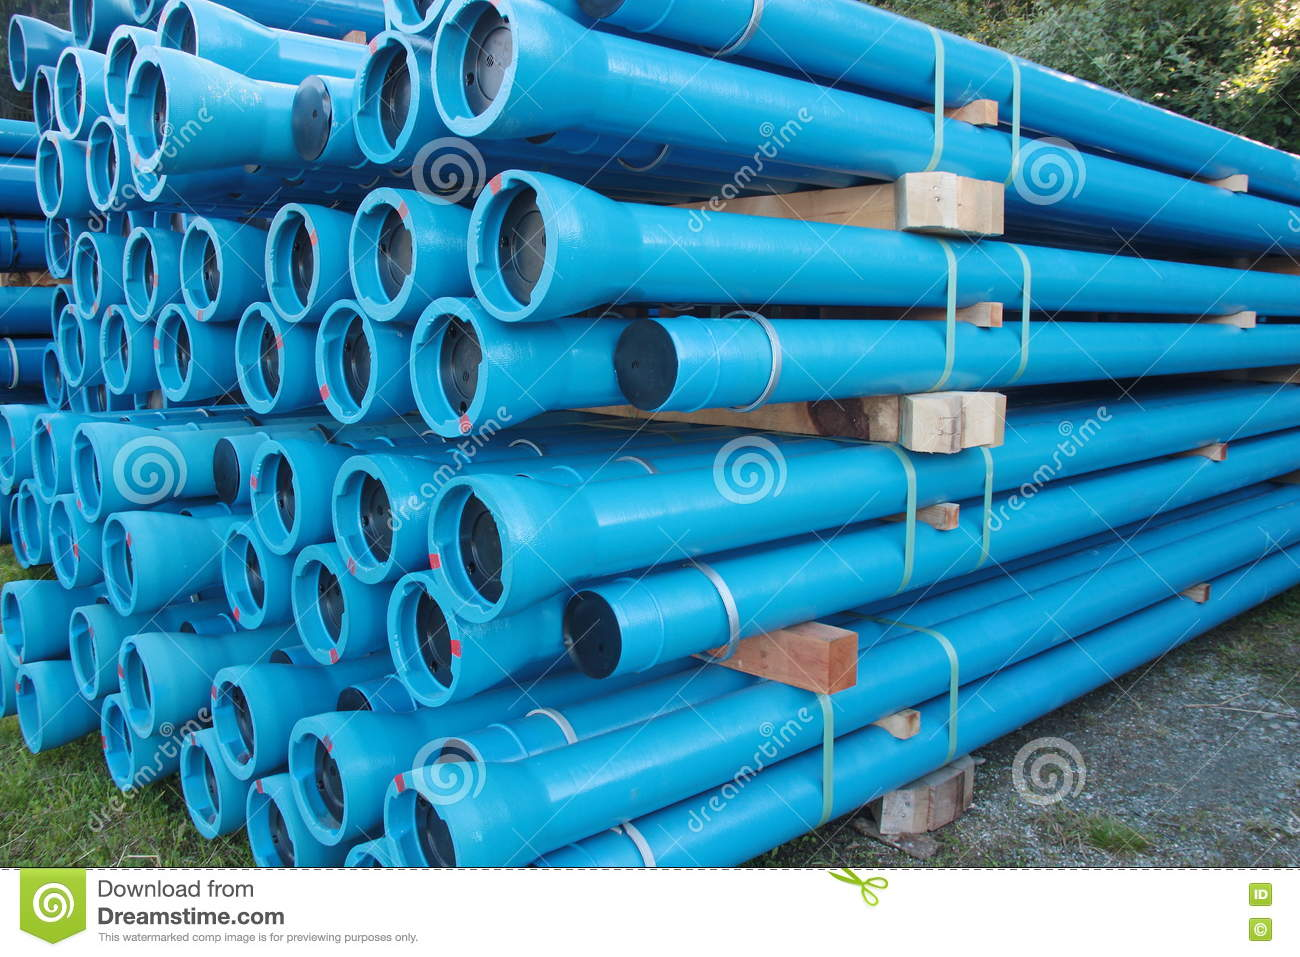 Blue PVC Plastic Pipes And Fittings Used For Underground